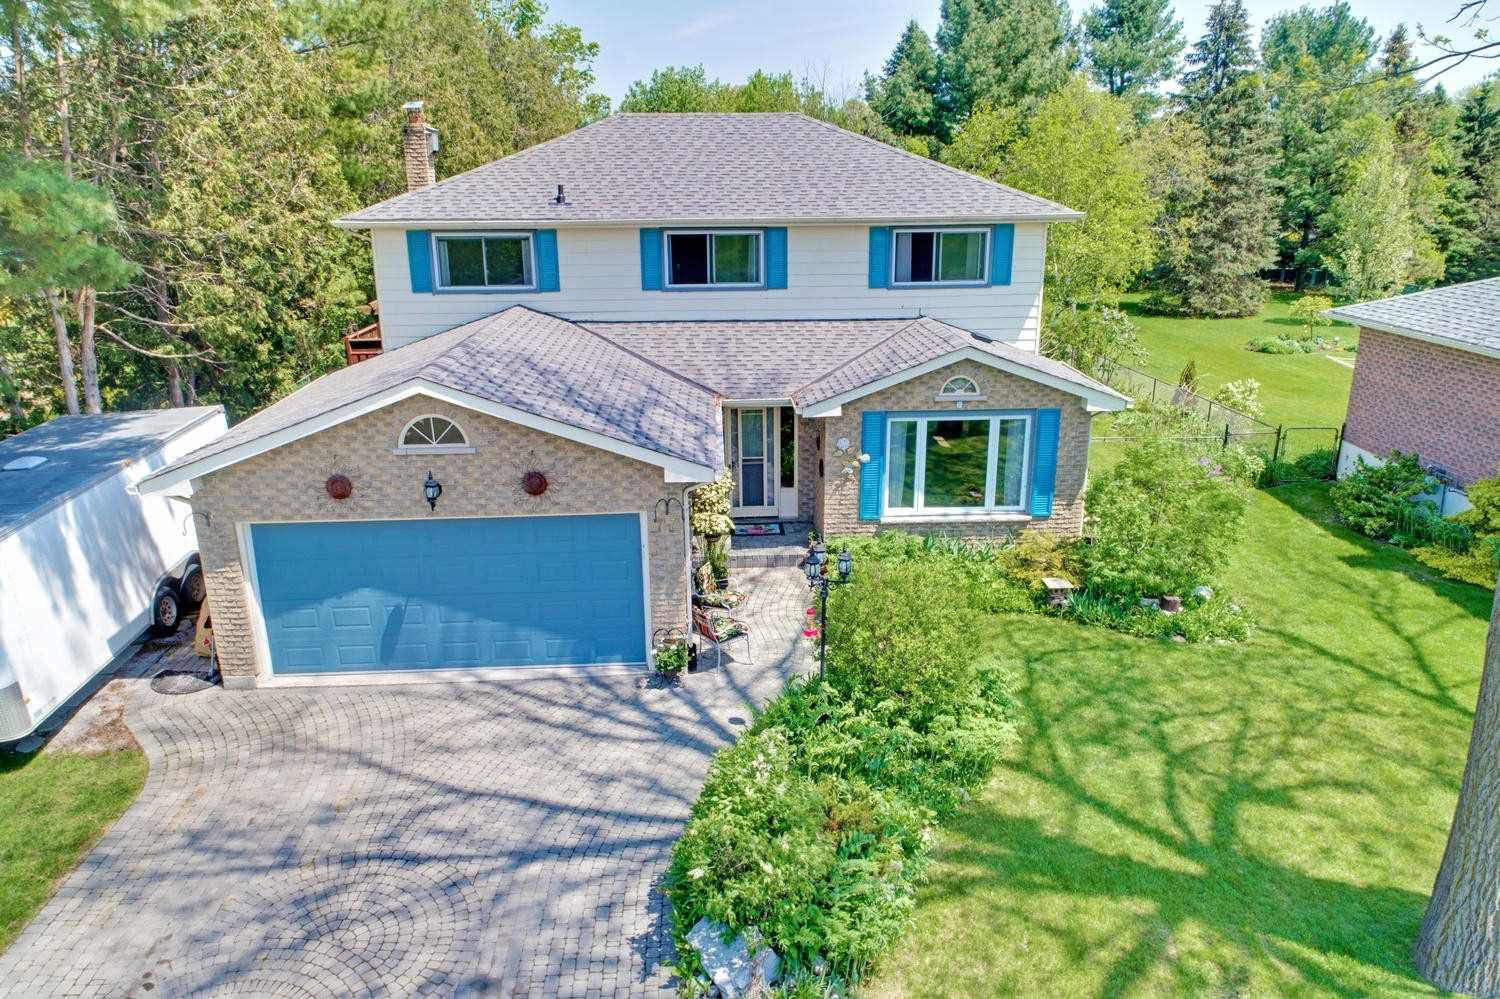 Main Photo: 77 Park Avenue in East Gwillimbury: Holland Landing House (2-Storey) for sale : MLS®# N4476126